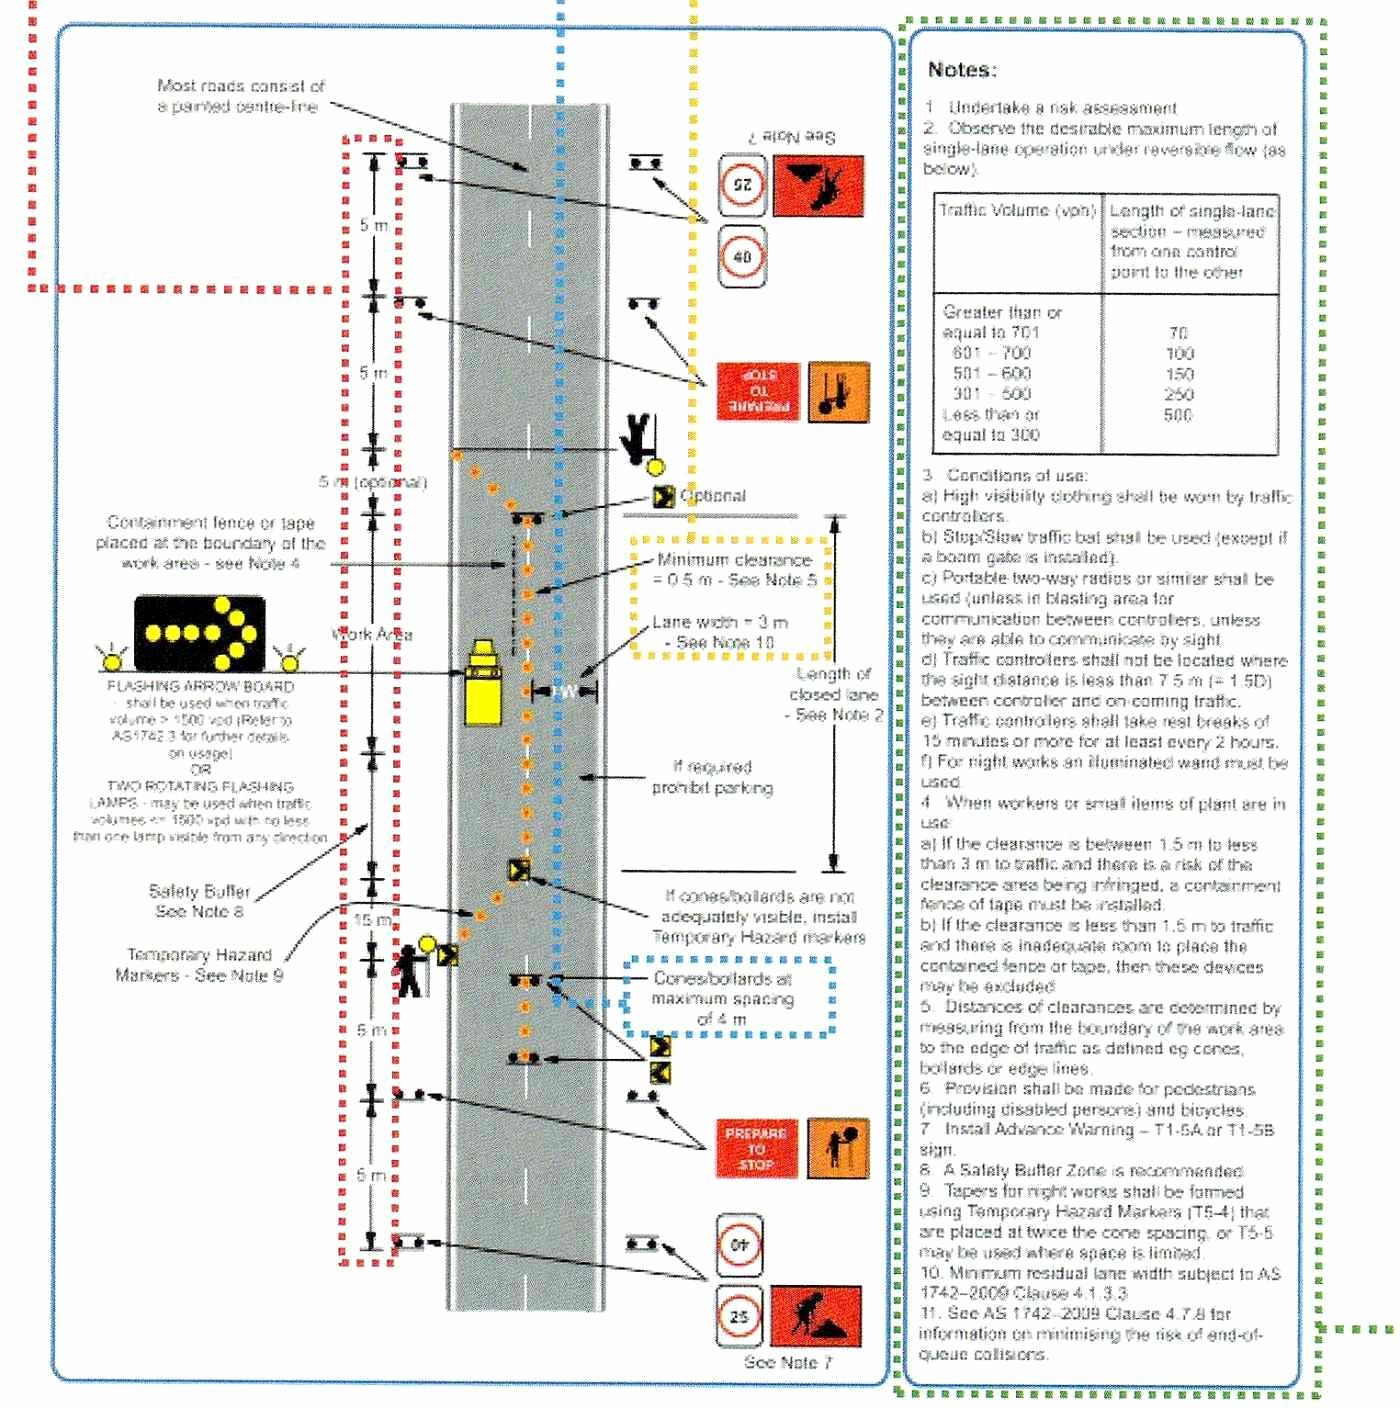 Traffic Control Plan Template Awesome Quality Improvement Plan Template Luxury Perfect Quality